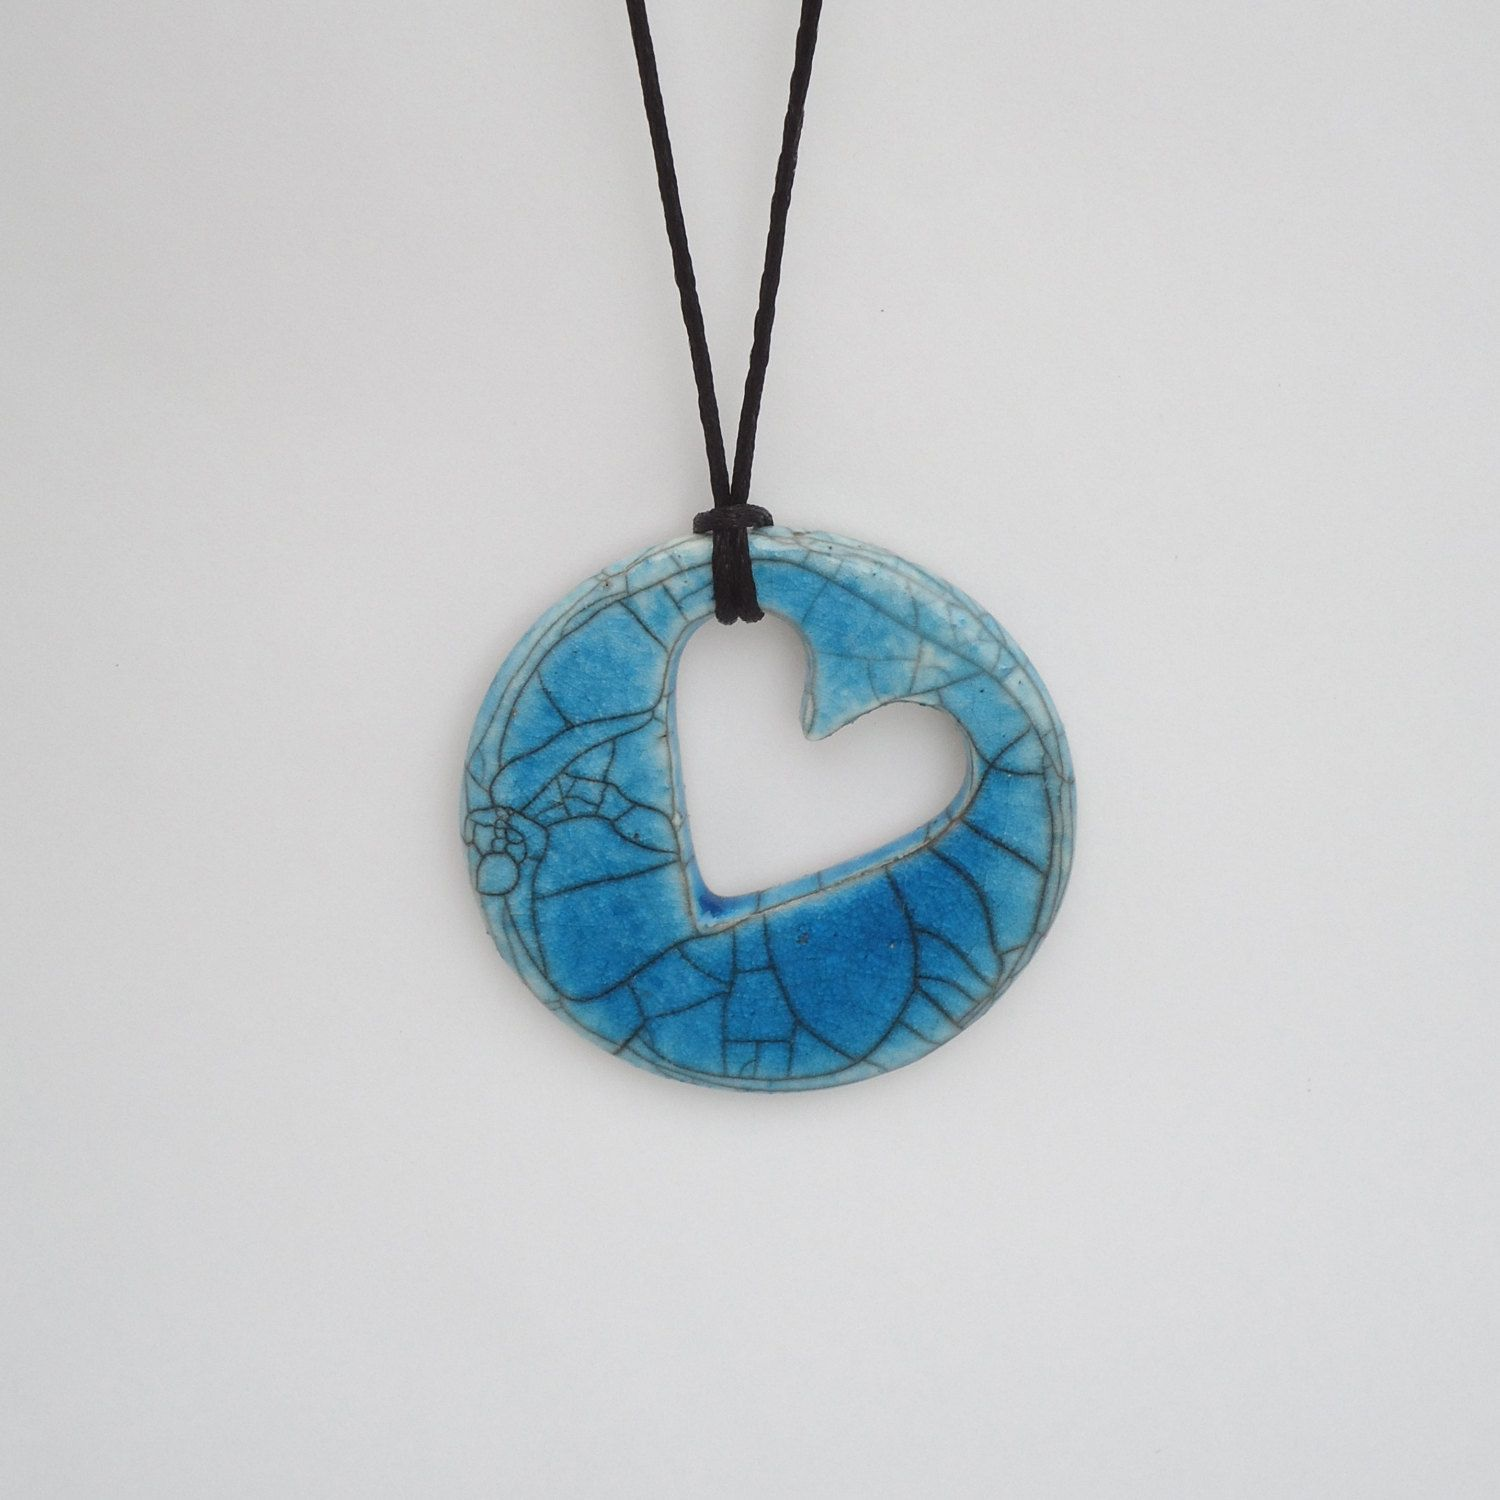 Raku pendant raku pendants pinterest pendants pottery and clay items similar to raku ceramic pendant necklace on etsy aloadofball Choice Image